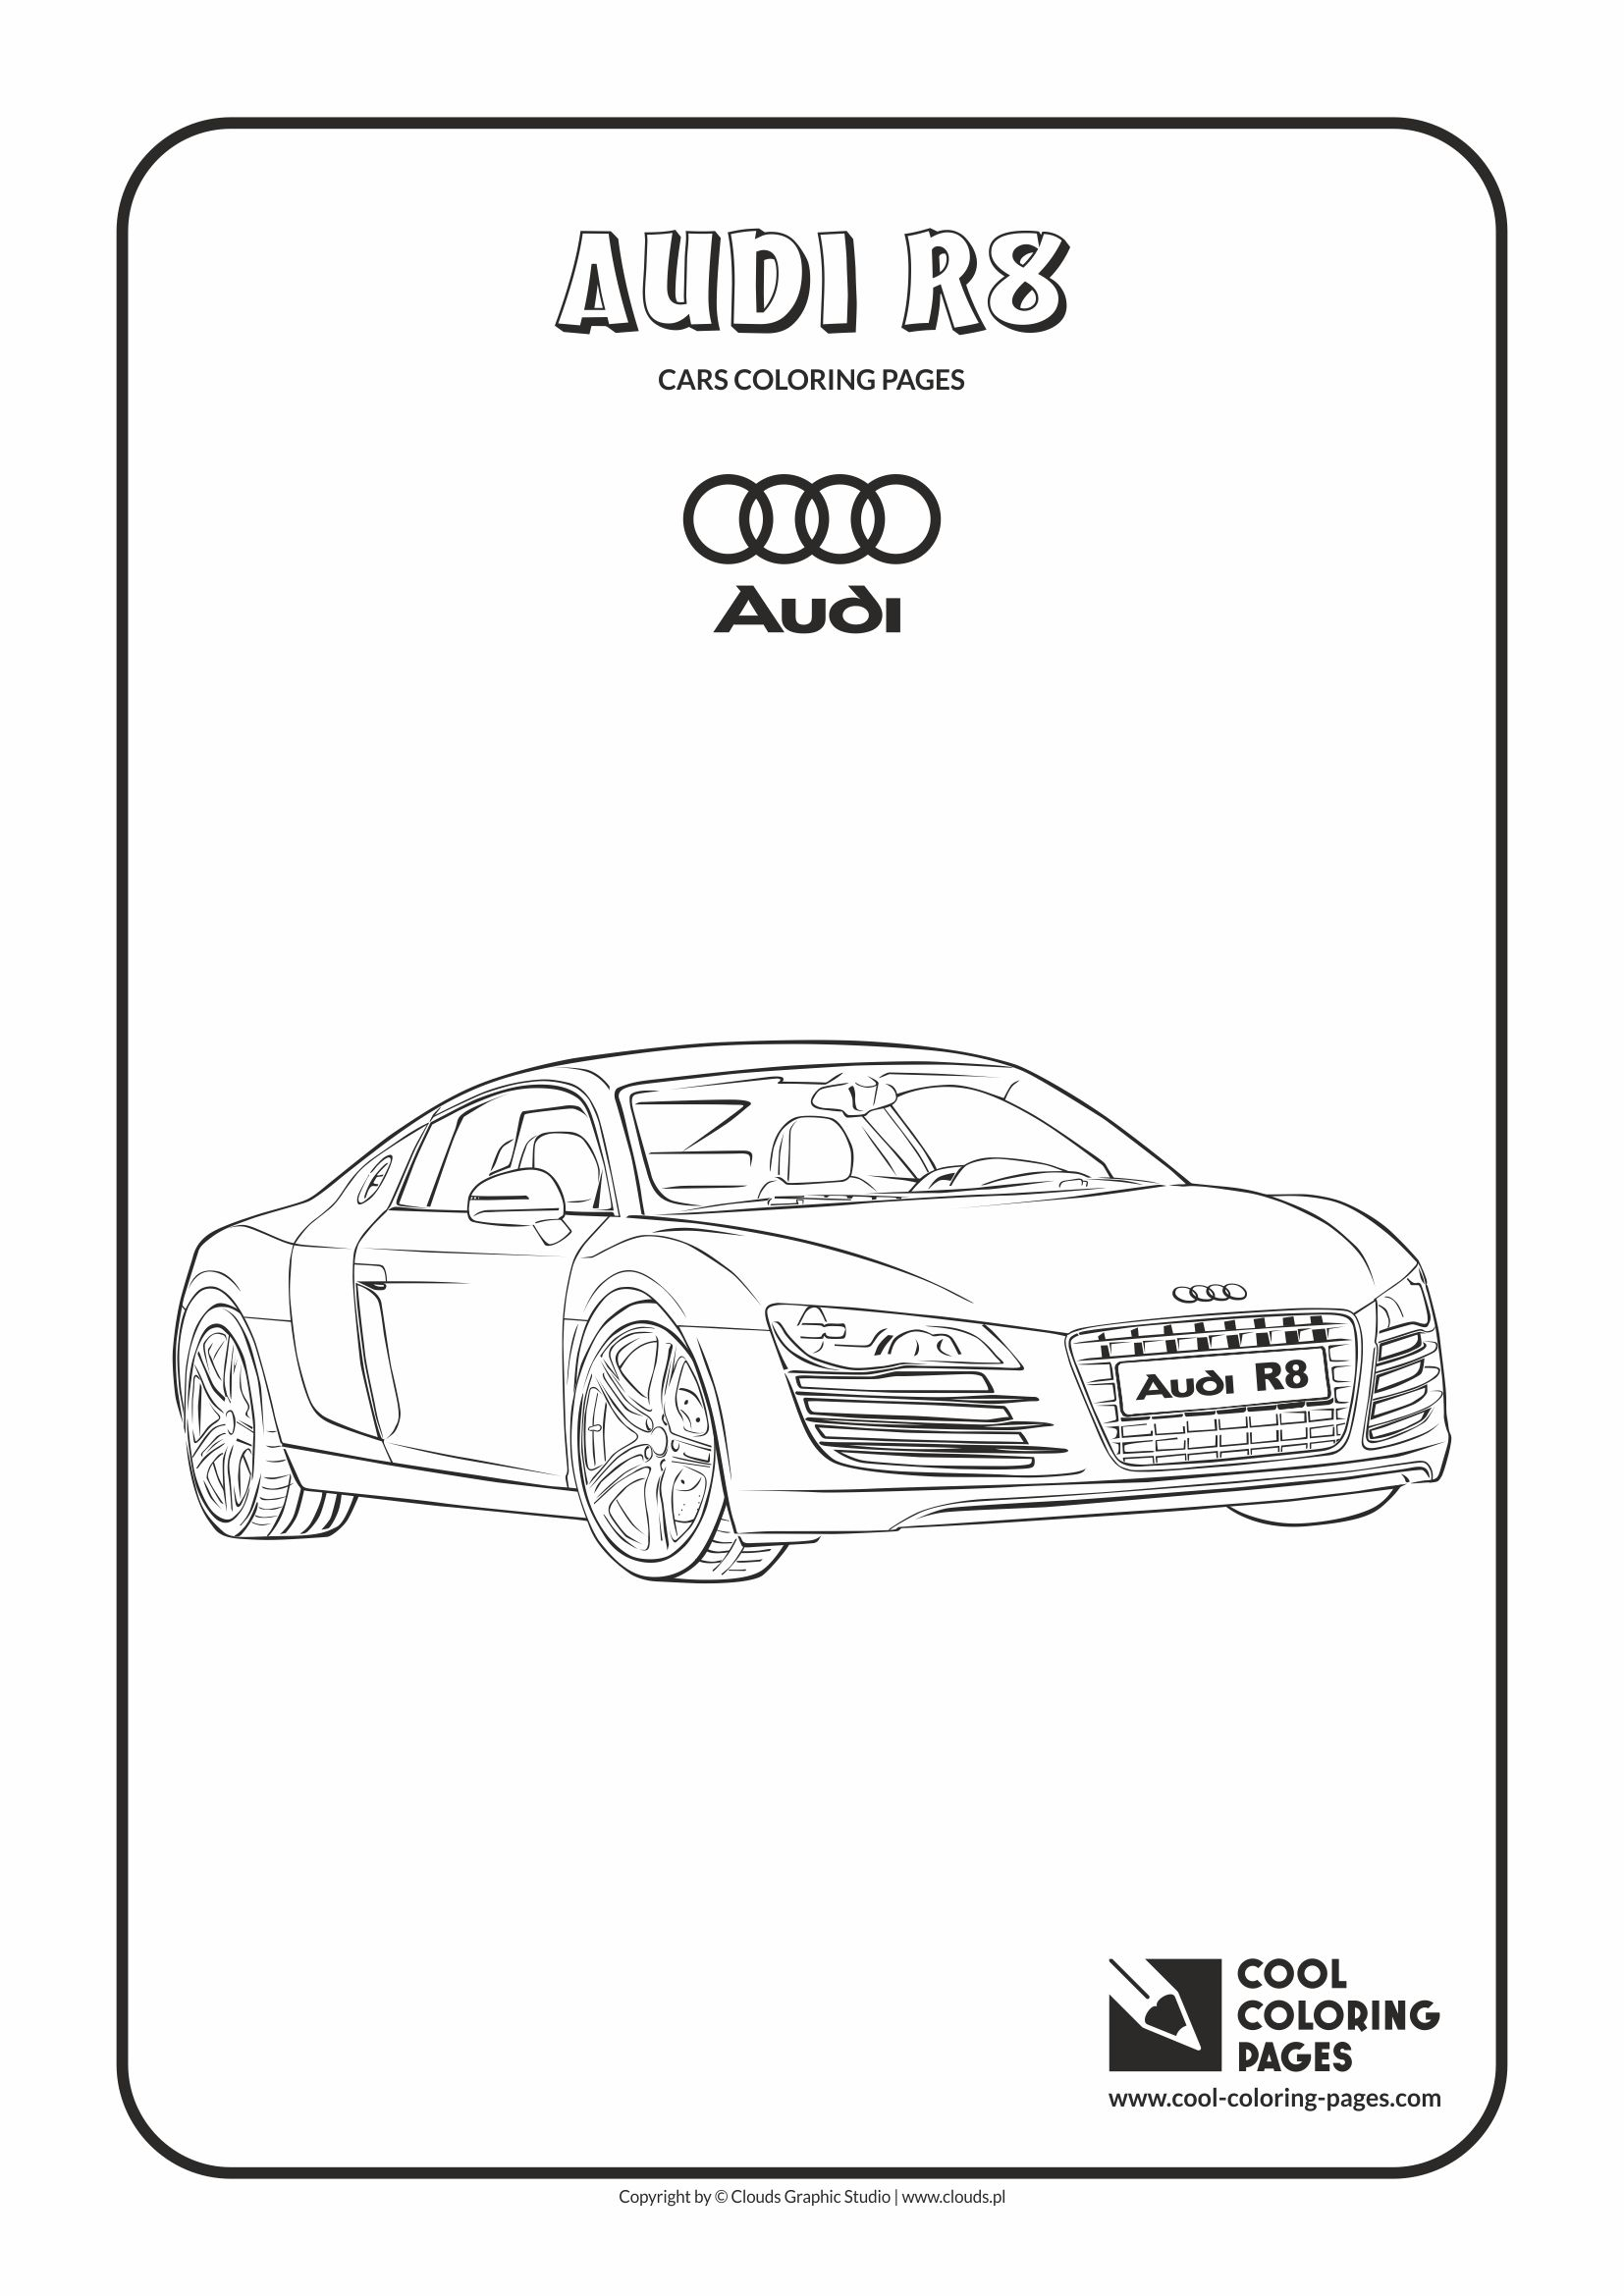 Cool Coloring Pages - Vehicles / Audi R8 / Coloring page with Audi R8